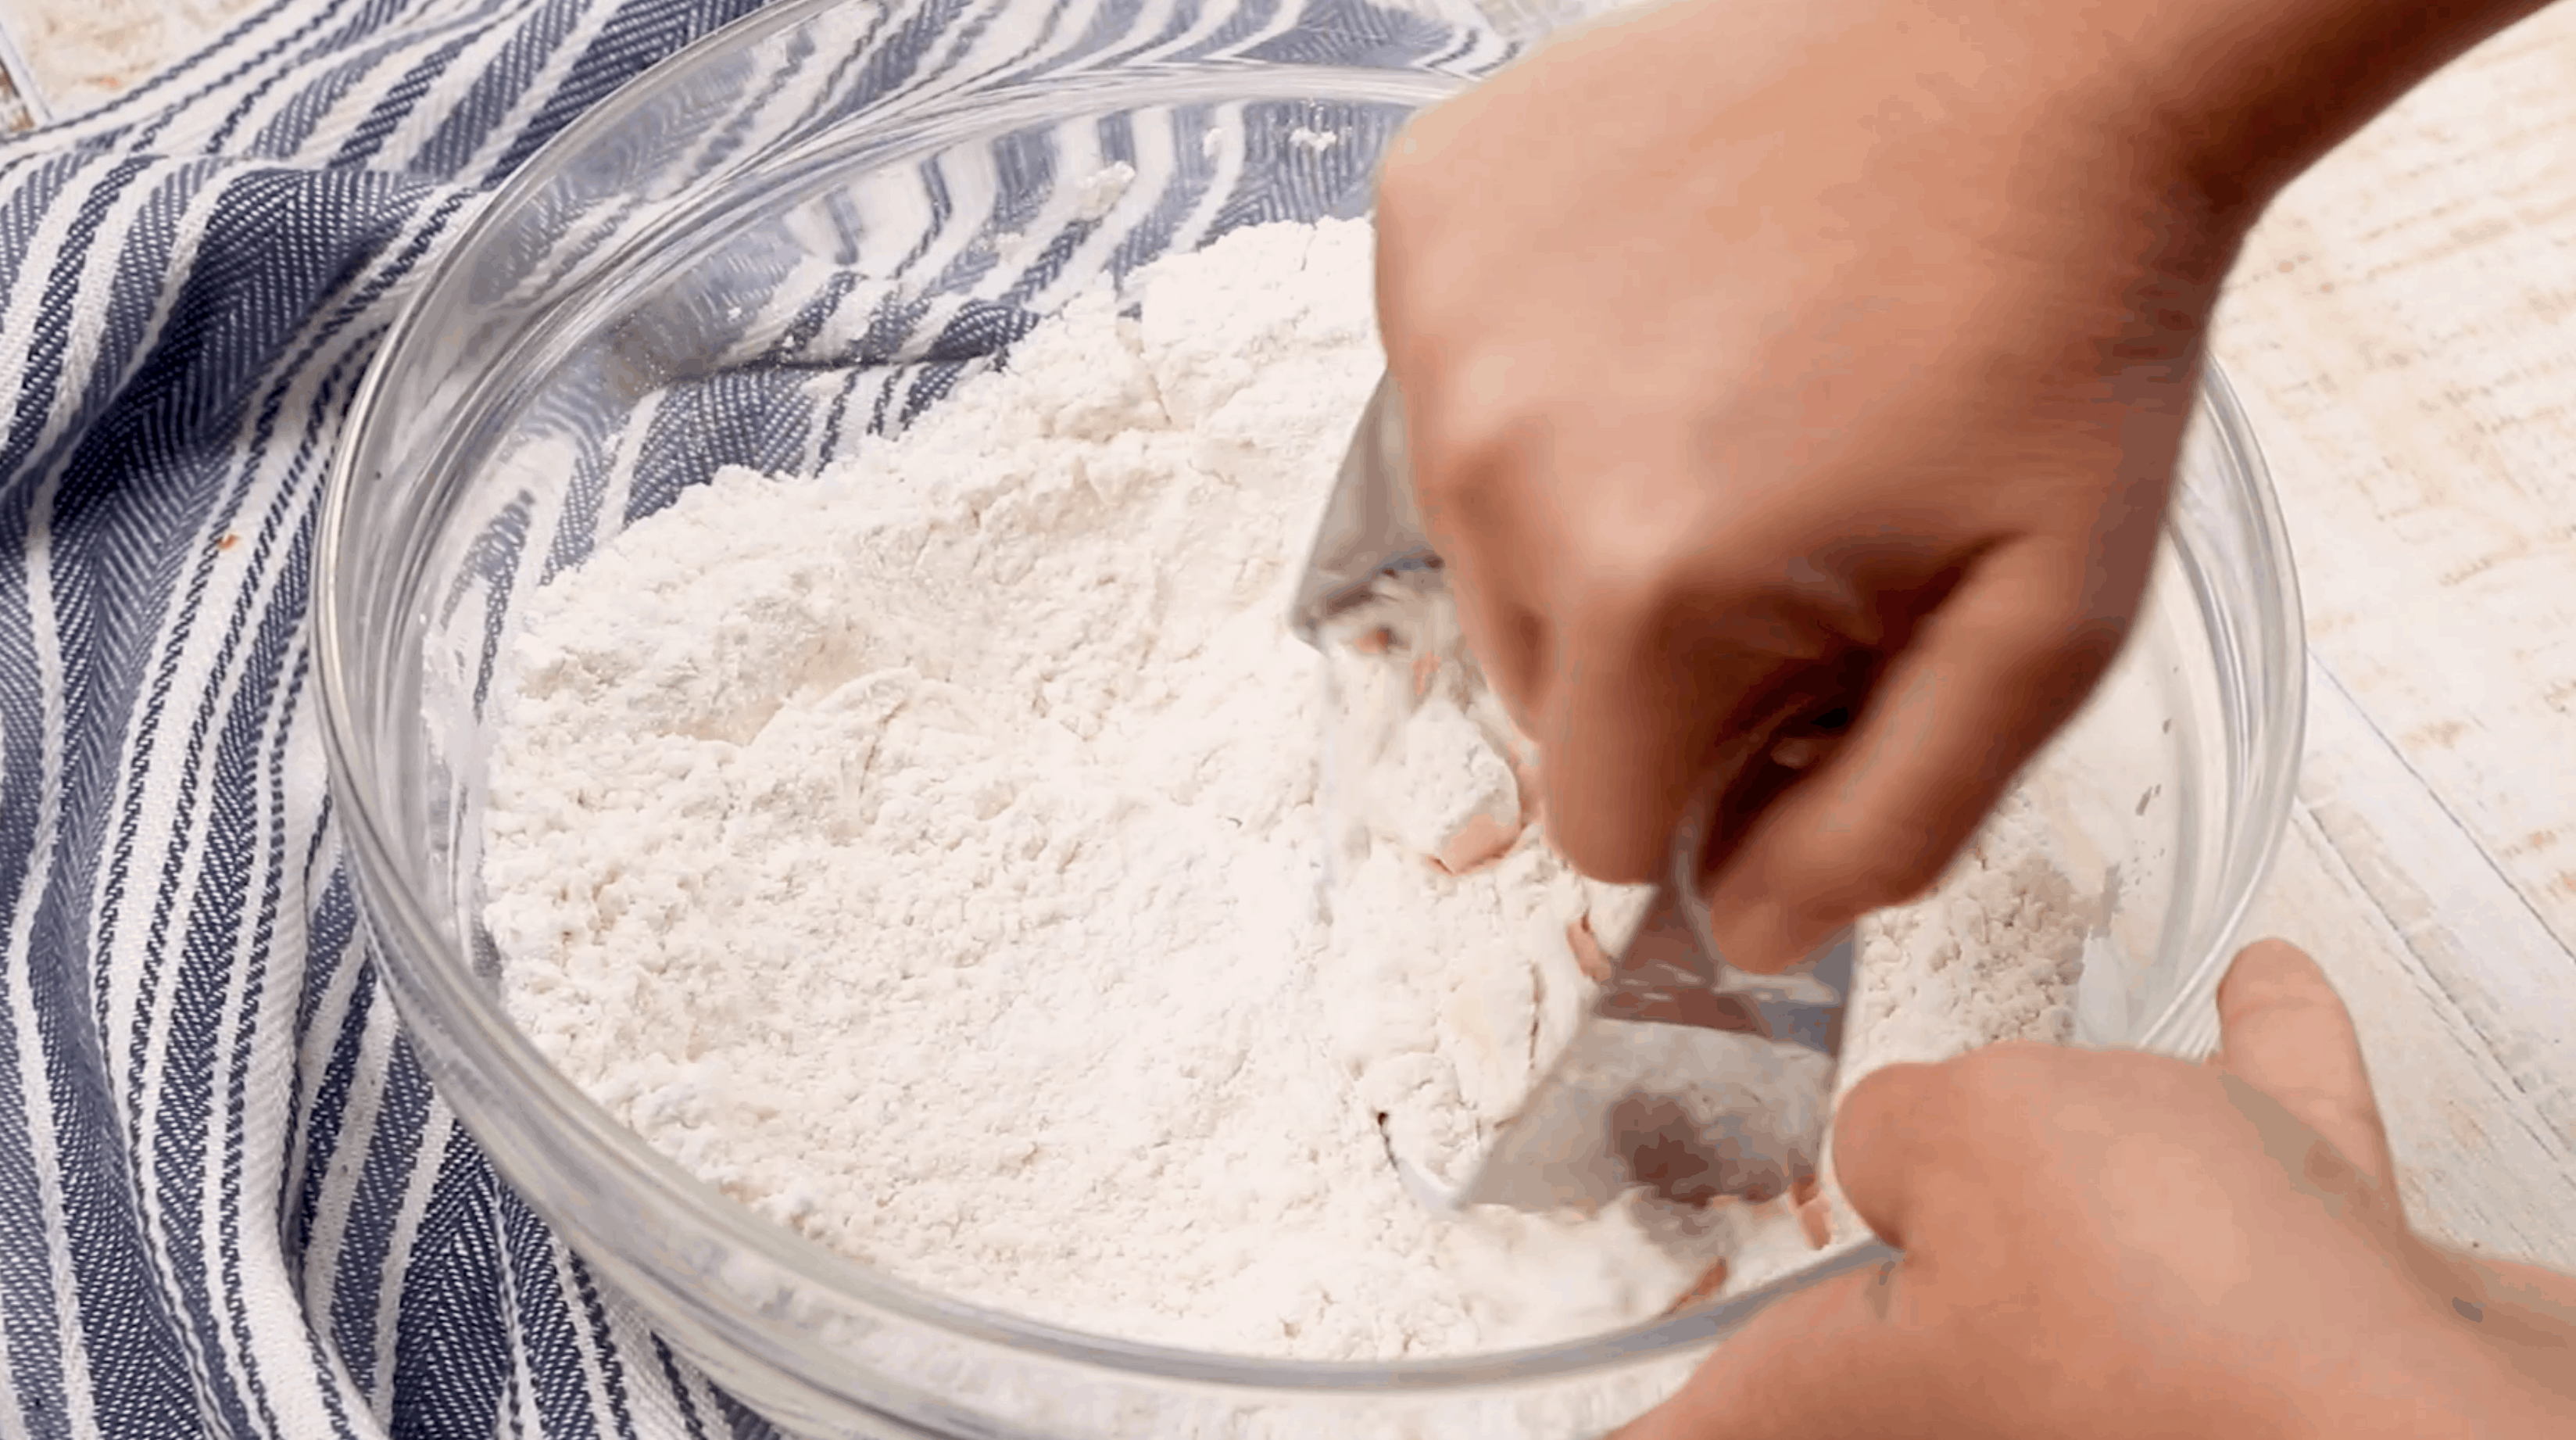 PASTRY CUTTER IN A BOWL OF FLOUR PUSHING DOWN THE CUBES OF BUTTER